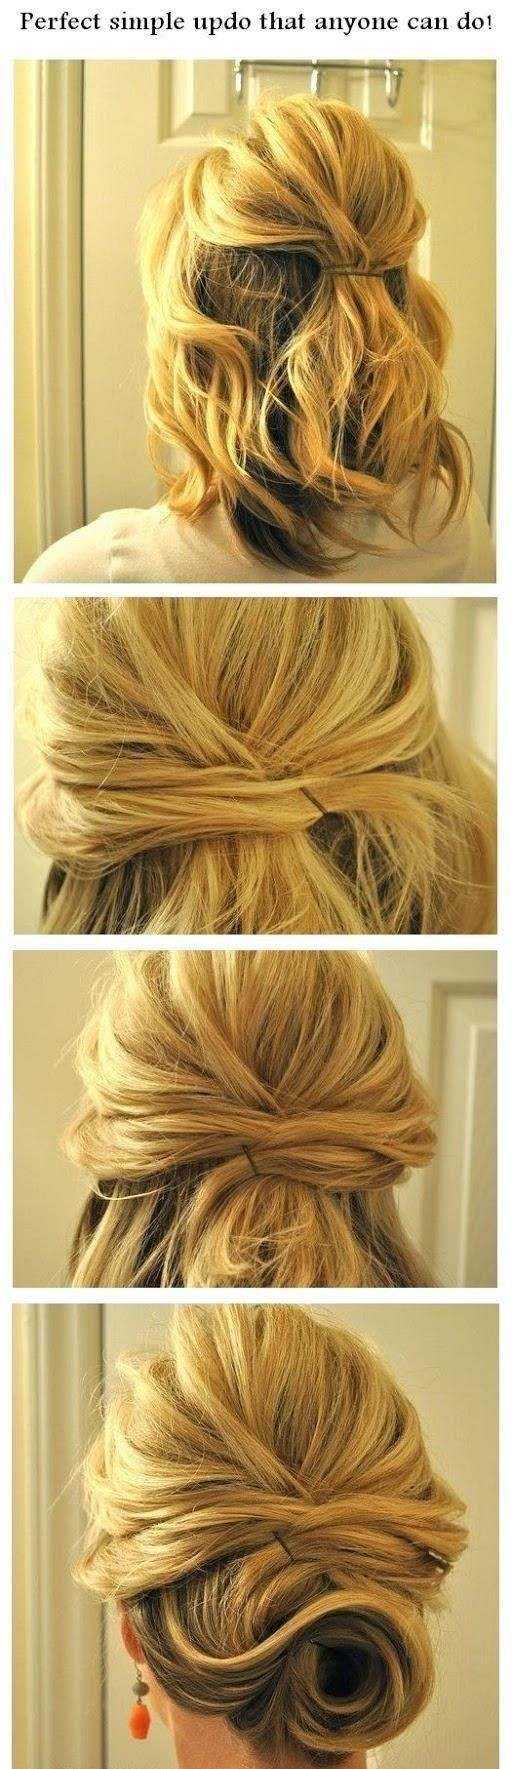 Perfect Simple Updo Hairstyle Tutorial